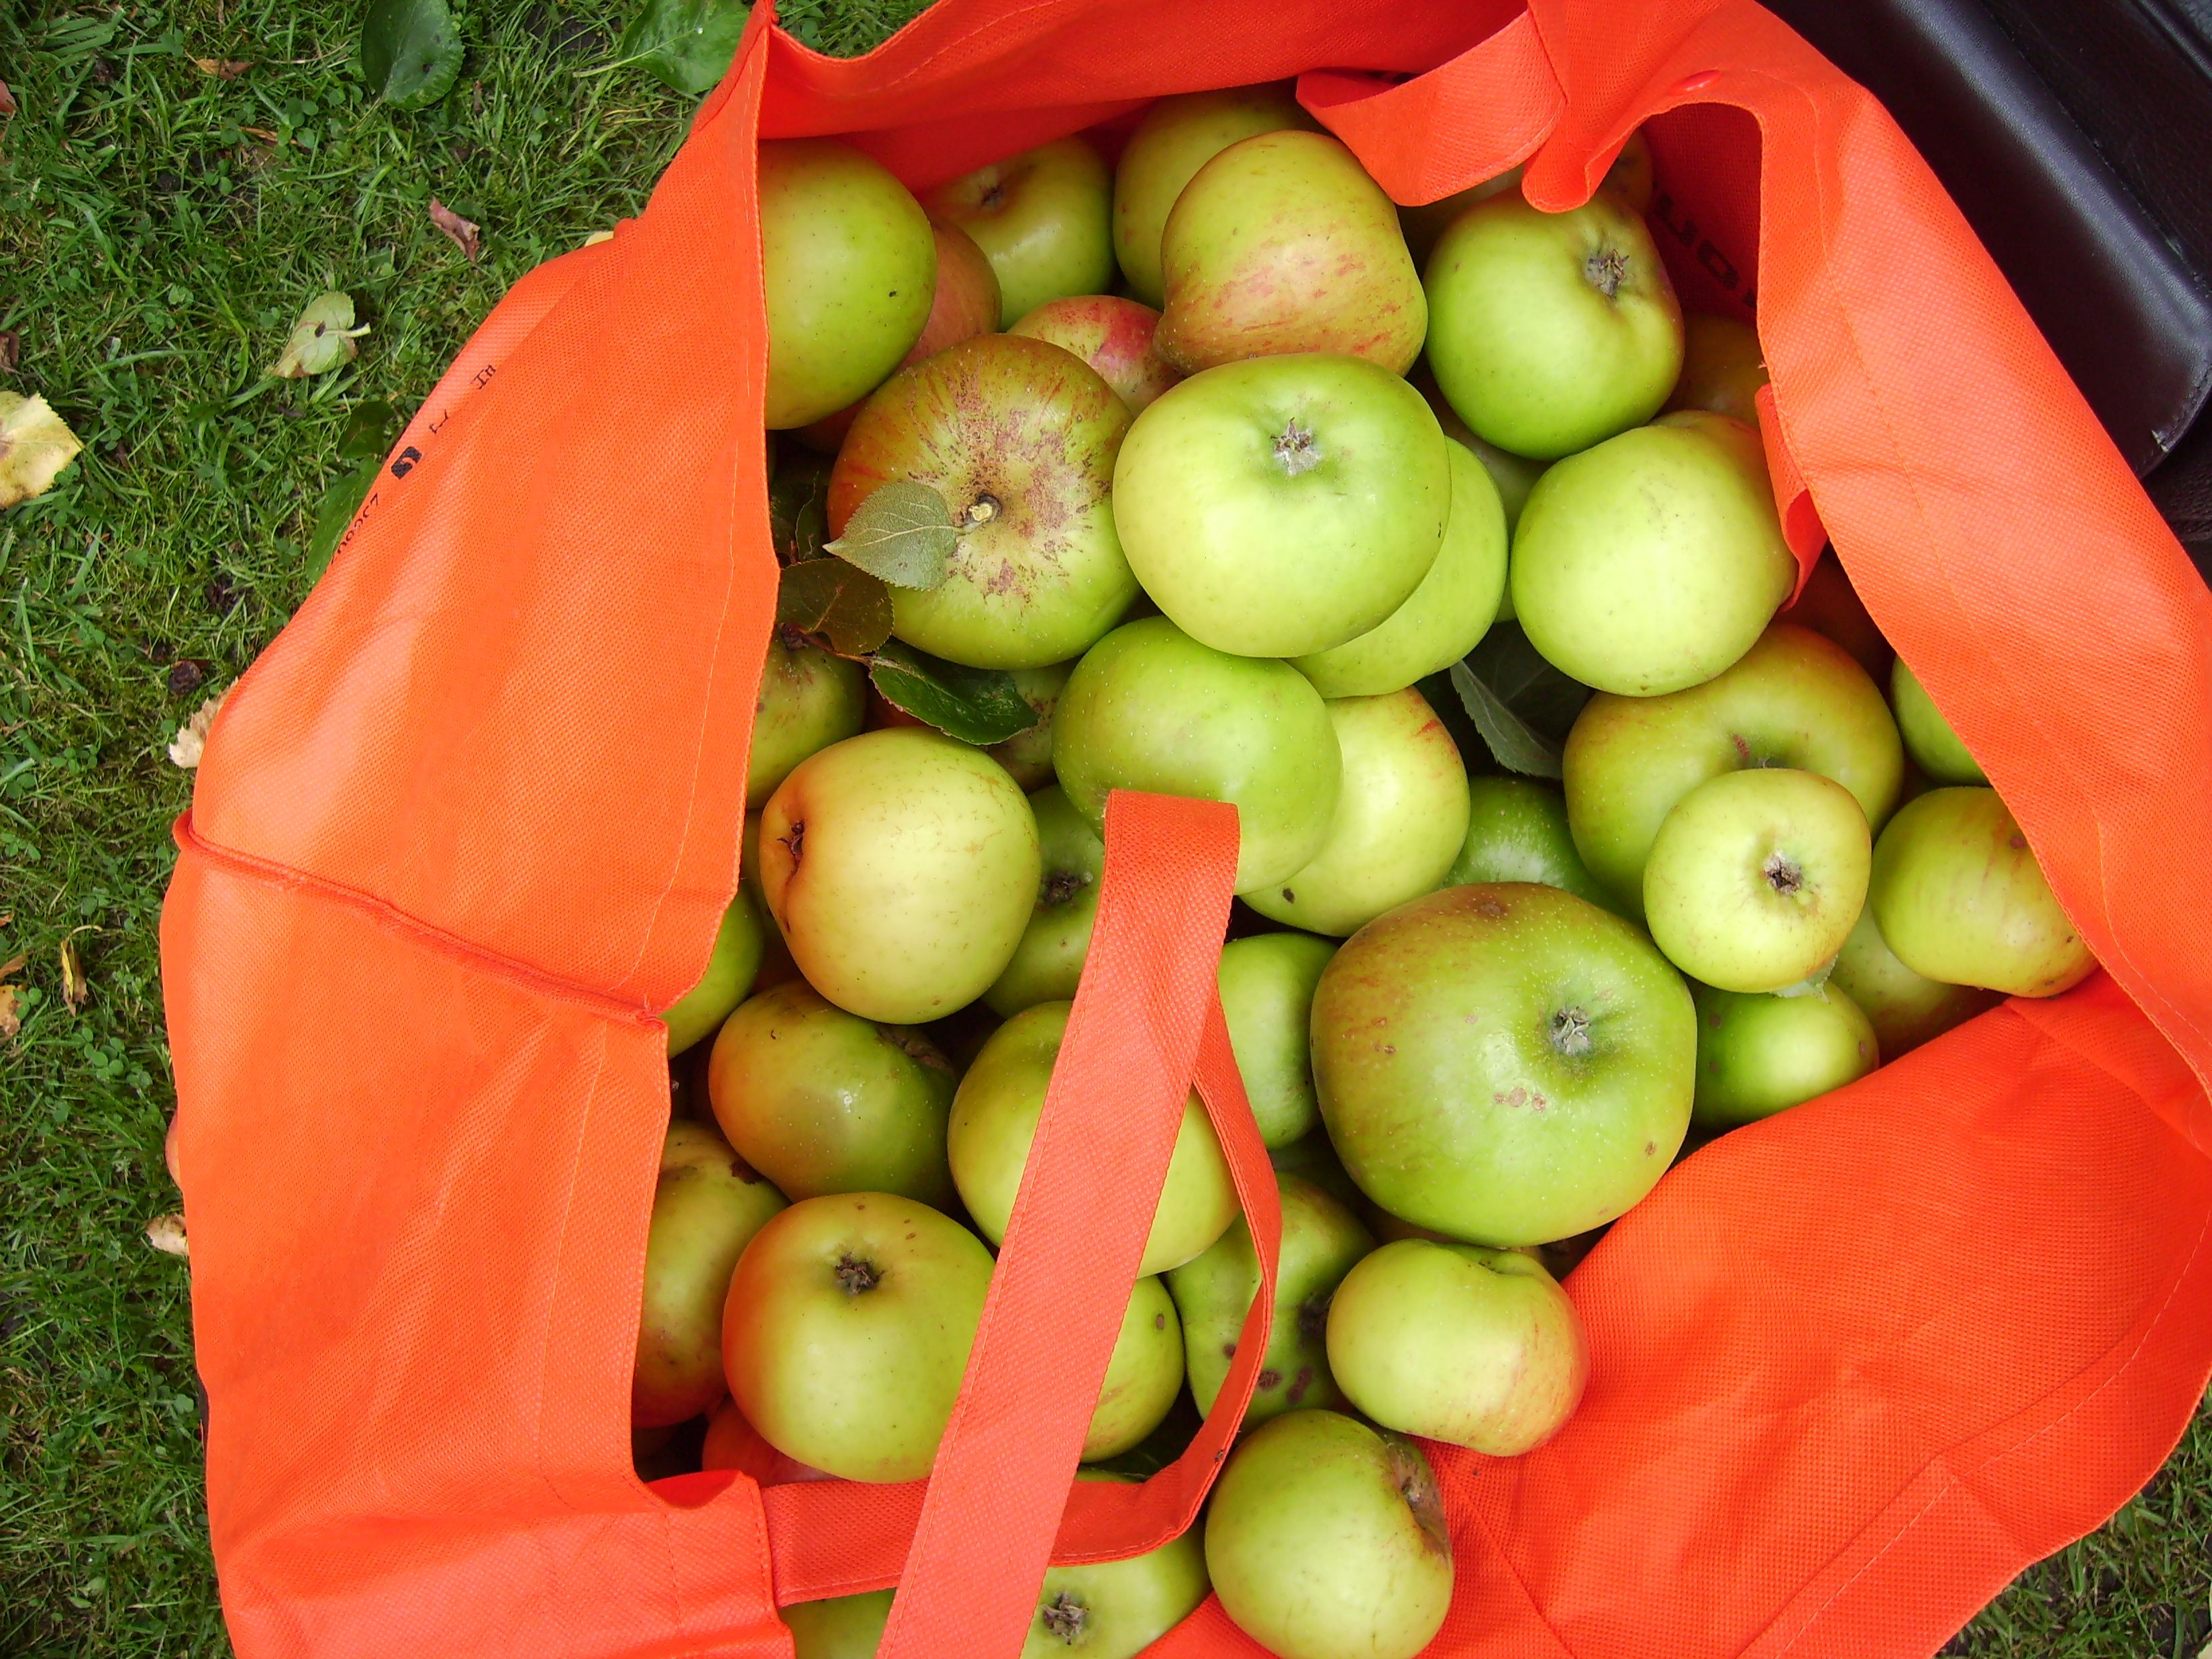 Bag of cooking apples